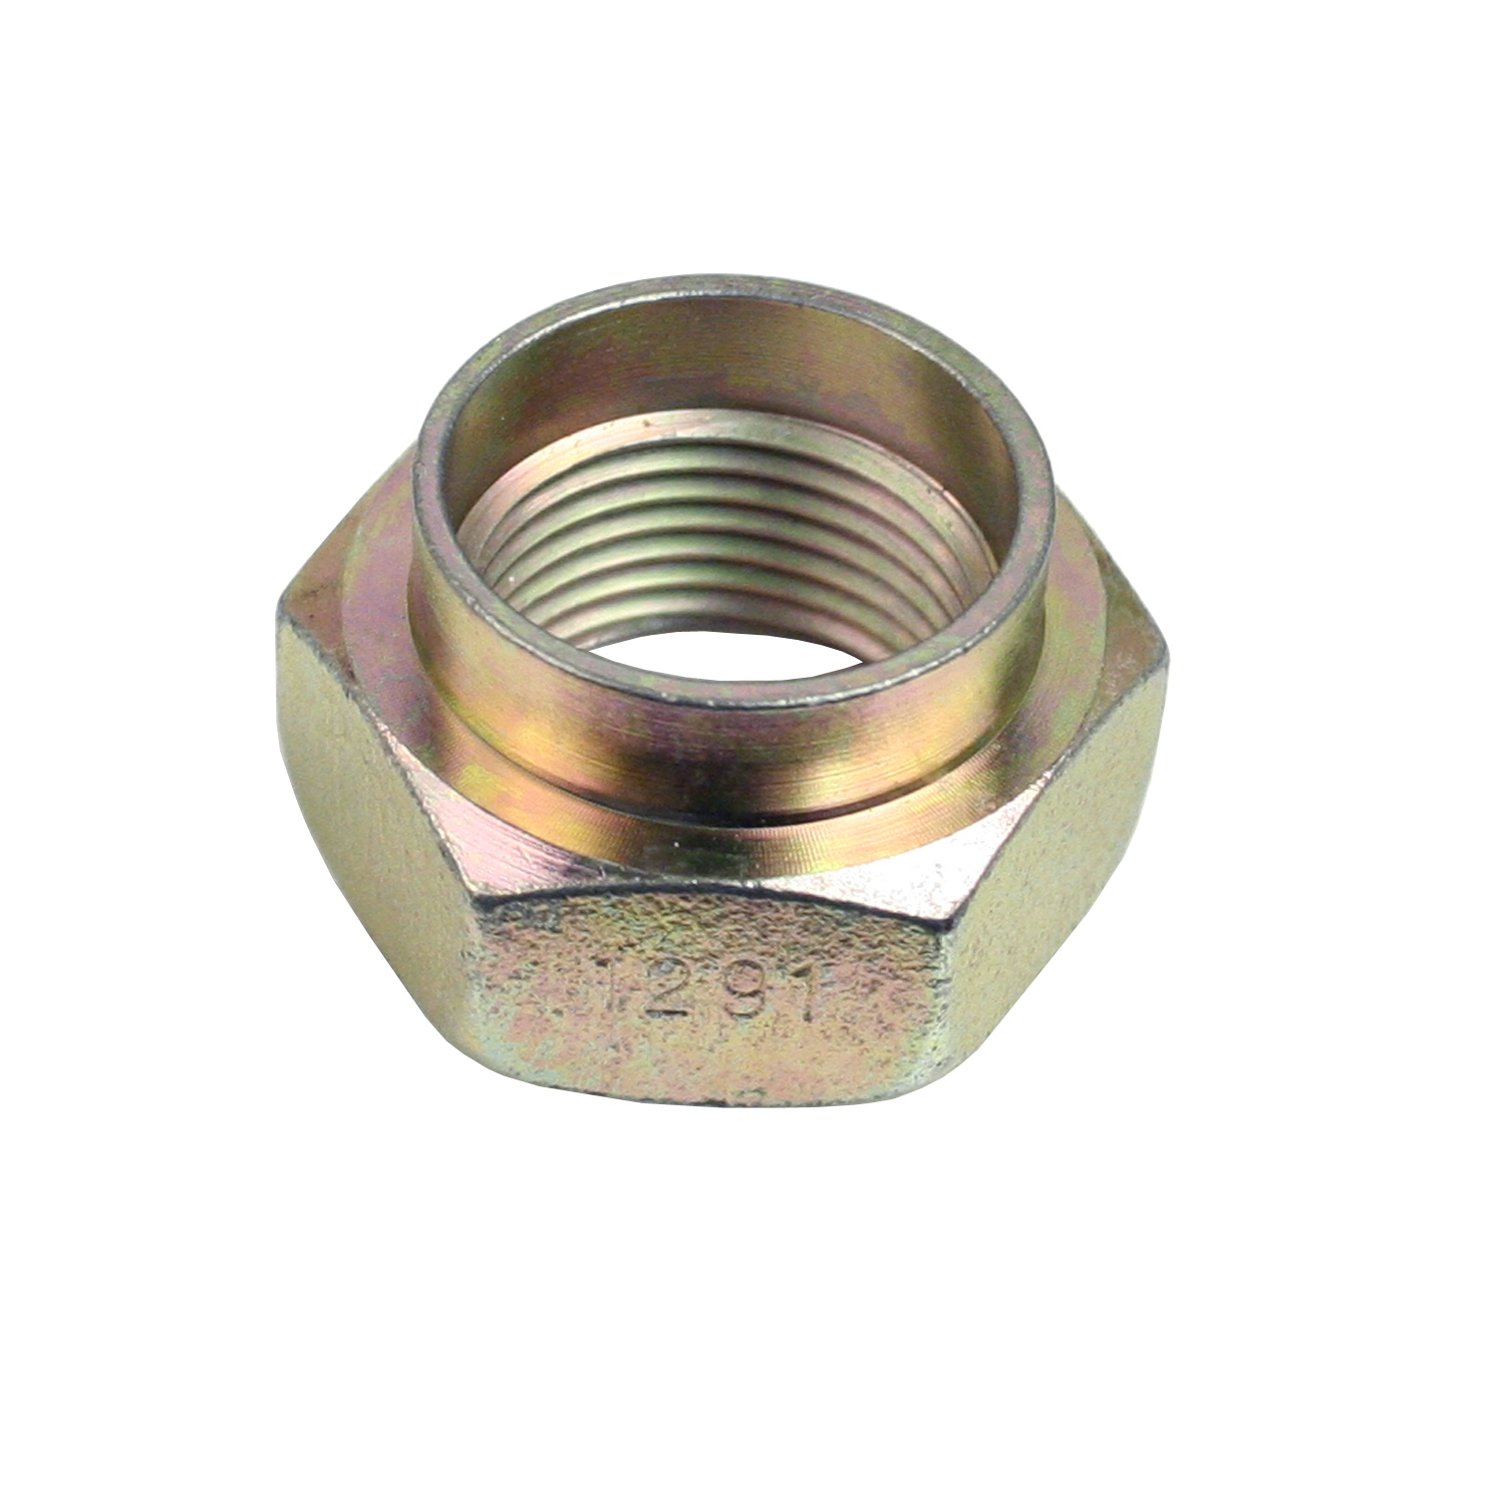 Beck Arnley 103-0518 Axle Nuts